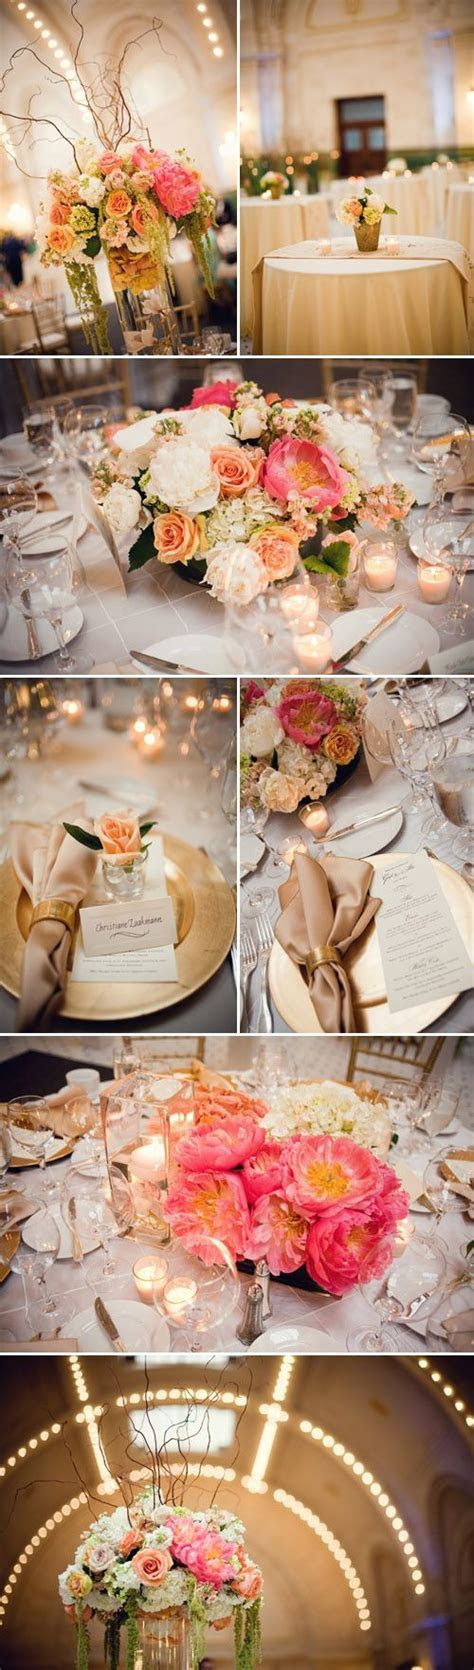 Ivory, Champagne, Gold and Peach Seattle Wedding   Wedding